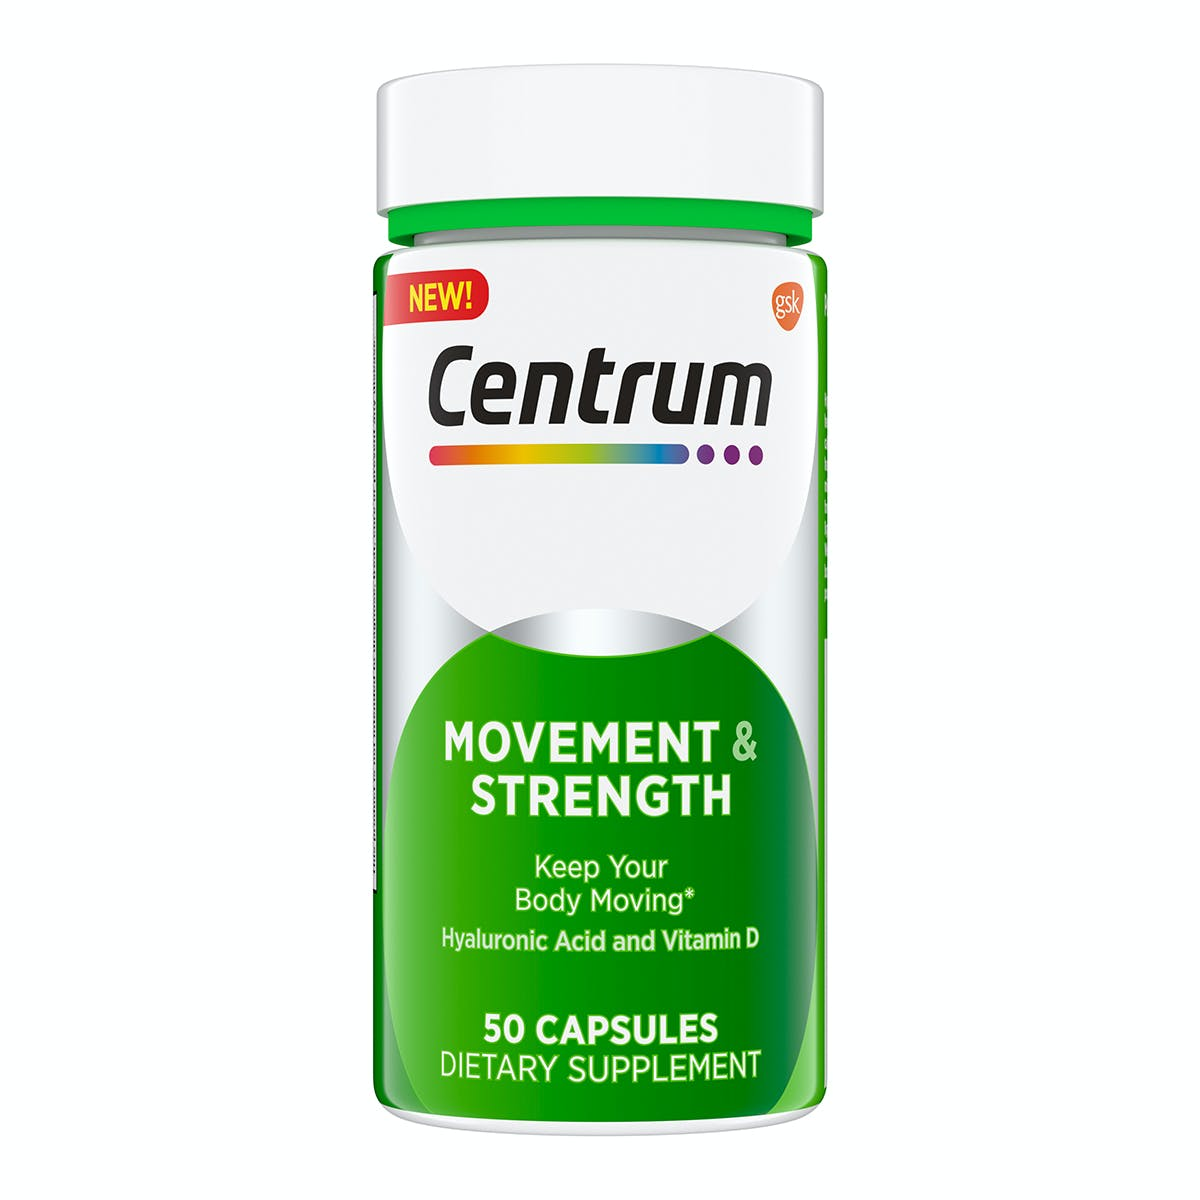 Bottle of CentrumAdult Movement & Strength Capsule Supplements]